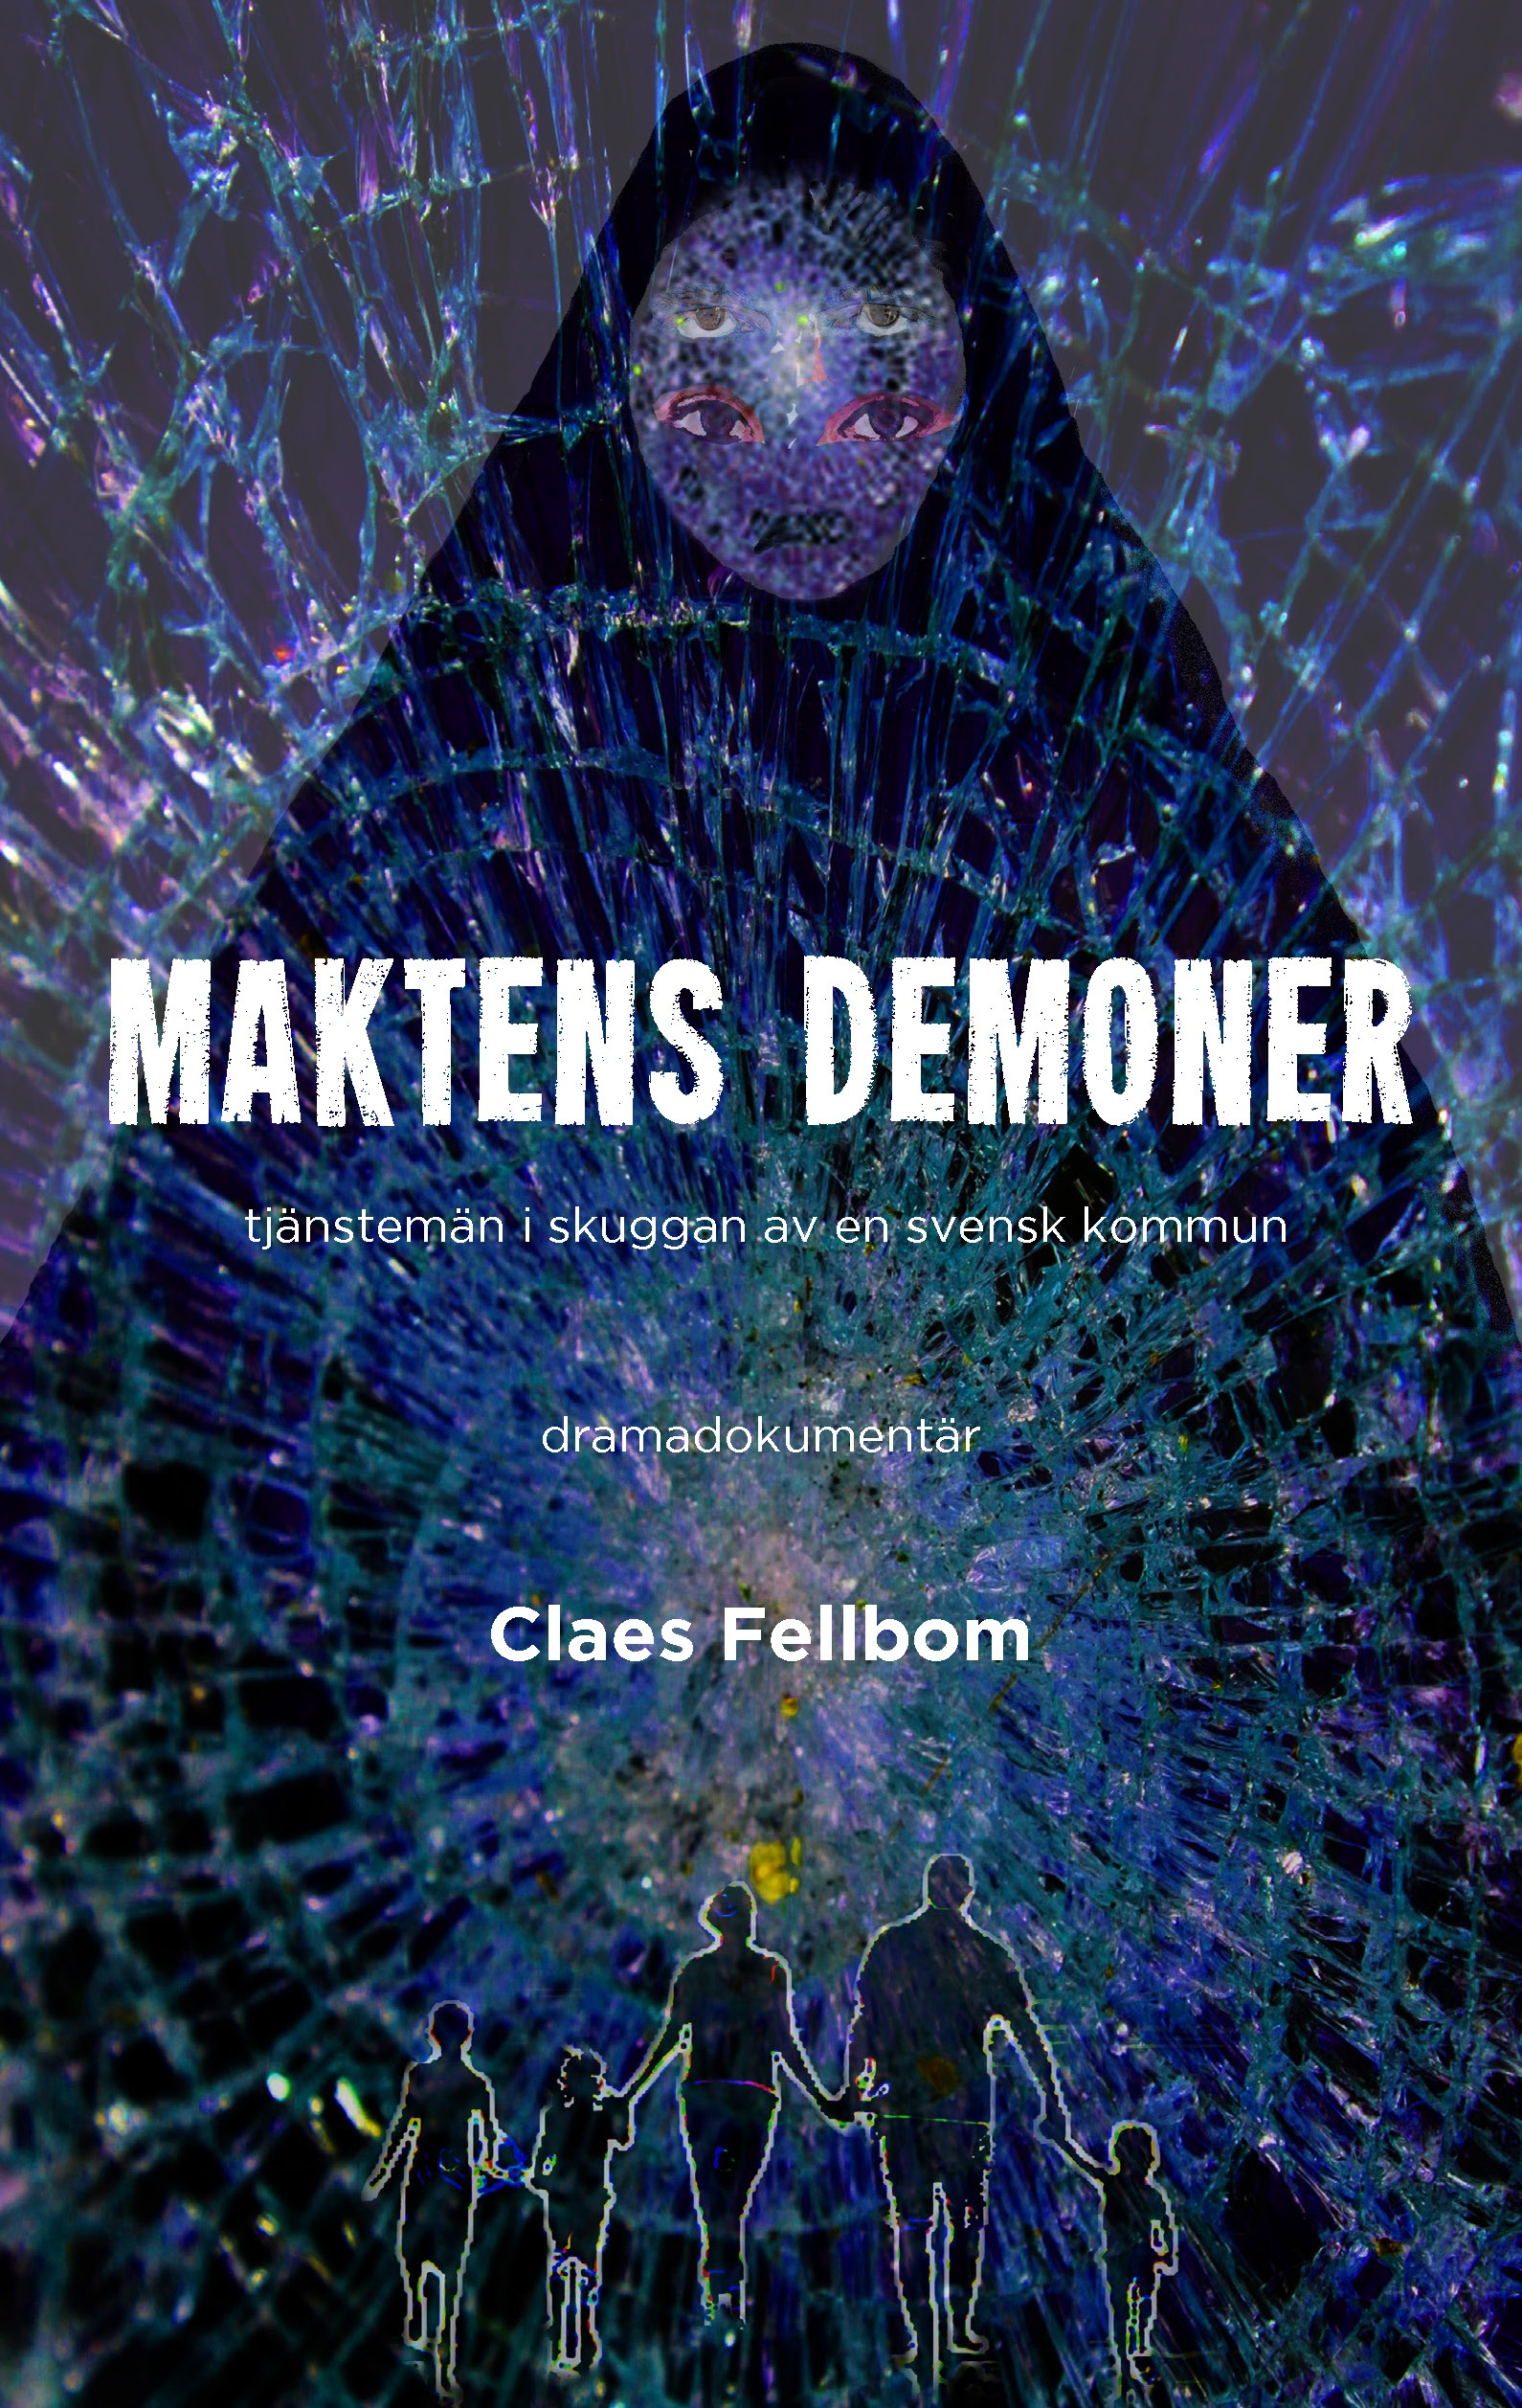 Maktens demoner av Claes Fellbom